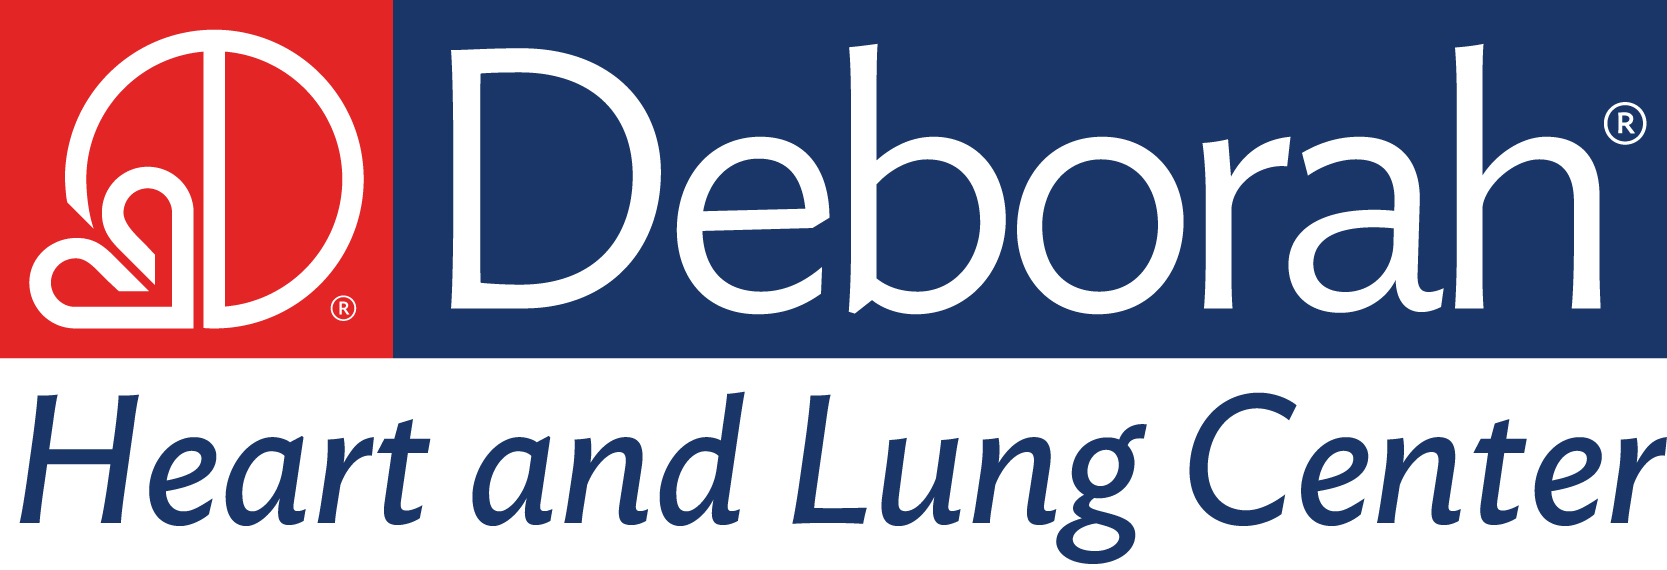 official Deborah Heart and Lung Center Logo 300 dpi horizontal